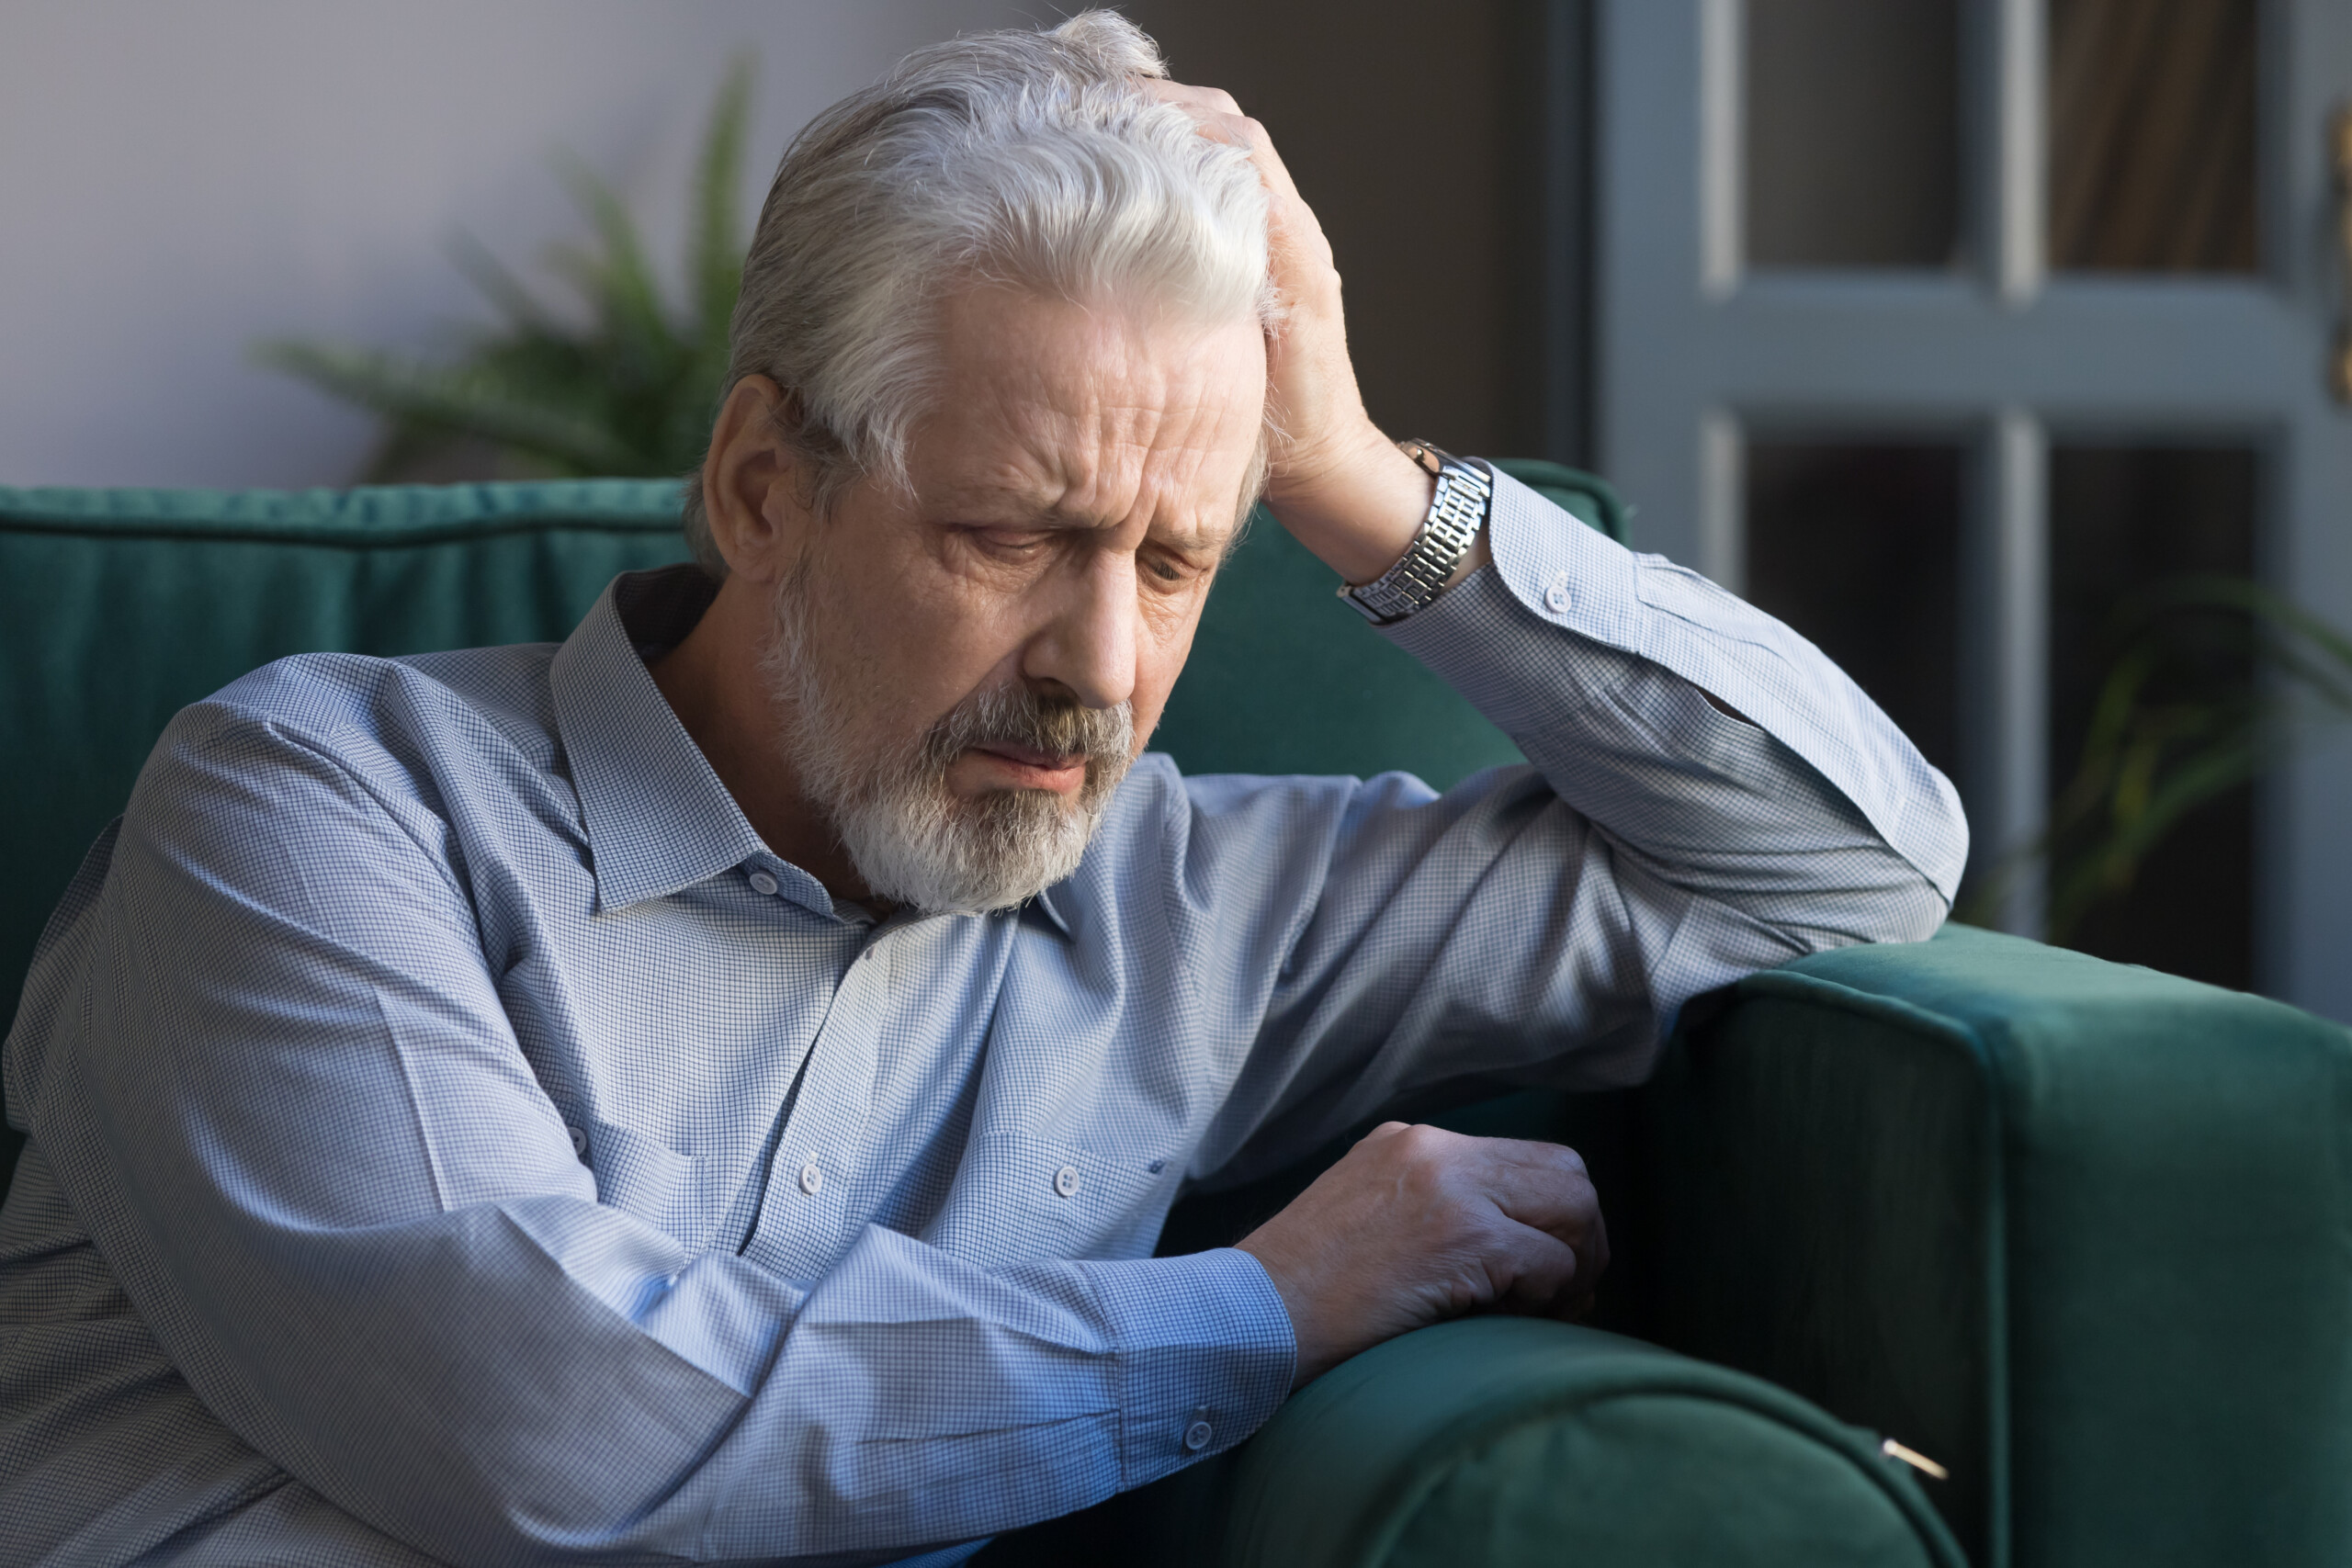 Depressed over Retirement? Thinking of Suicide?